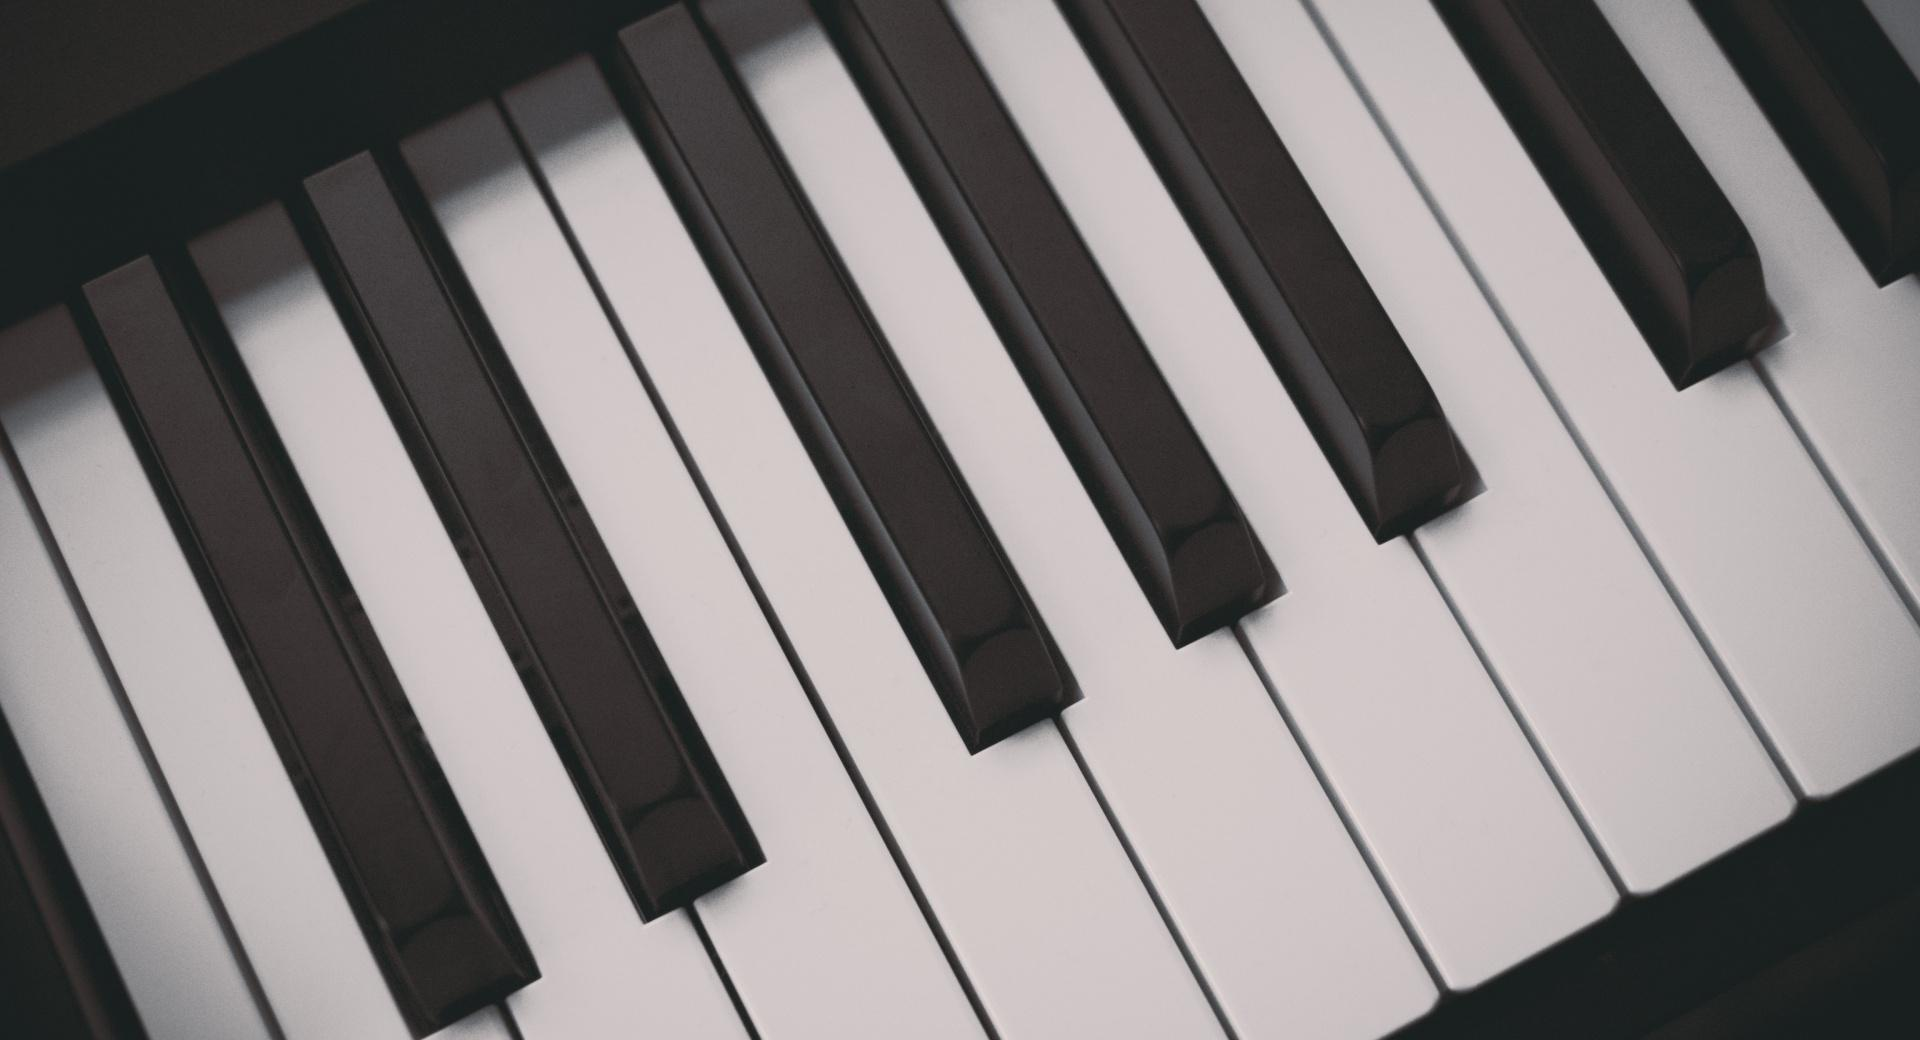 Piano Keyboards wallpapers HD quality